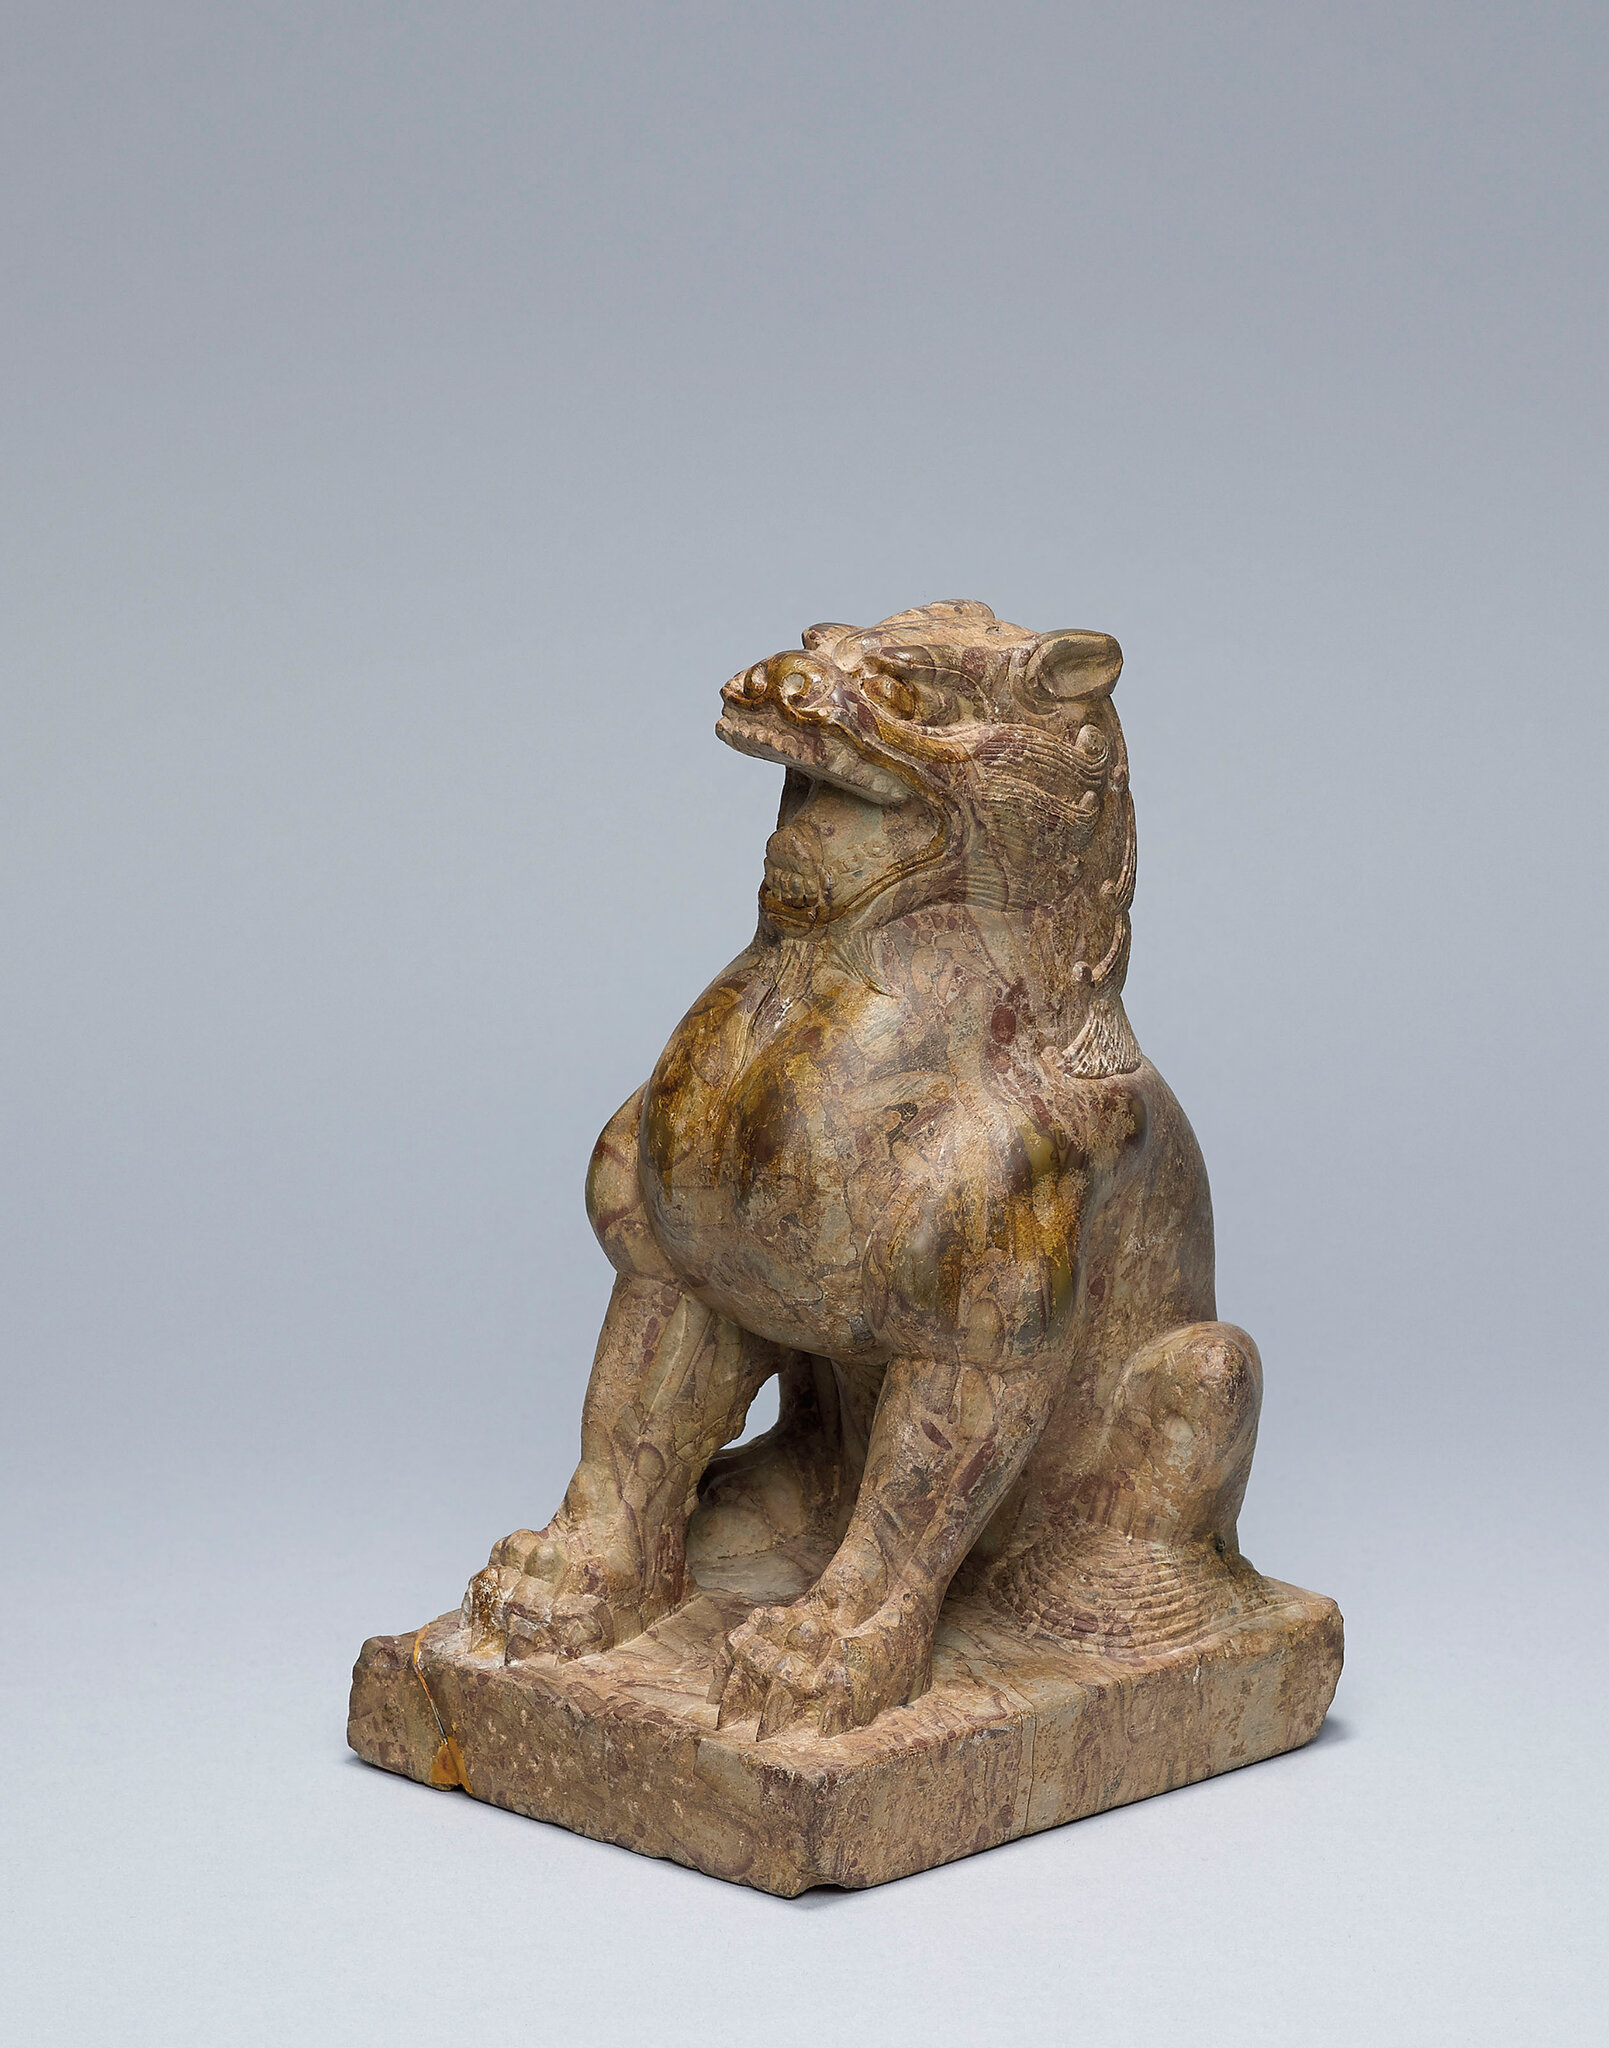 2015_HGK_03406_0149_000(a_puddingstone_figure_of_a_seated_lion_five_dynasties)